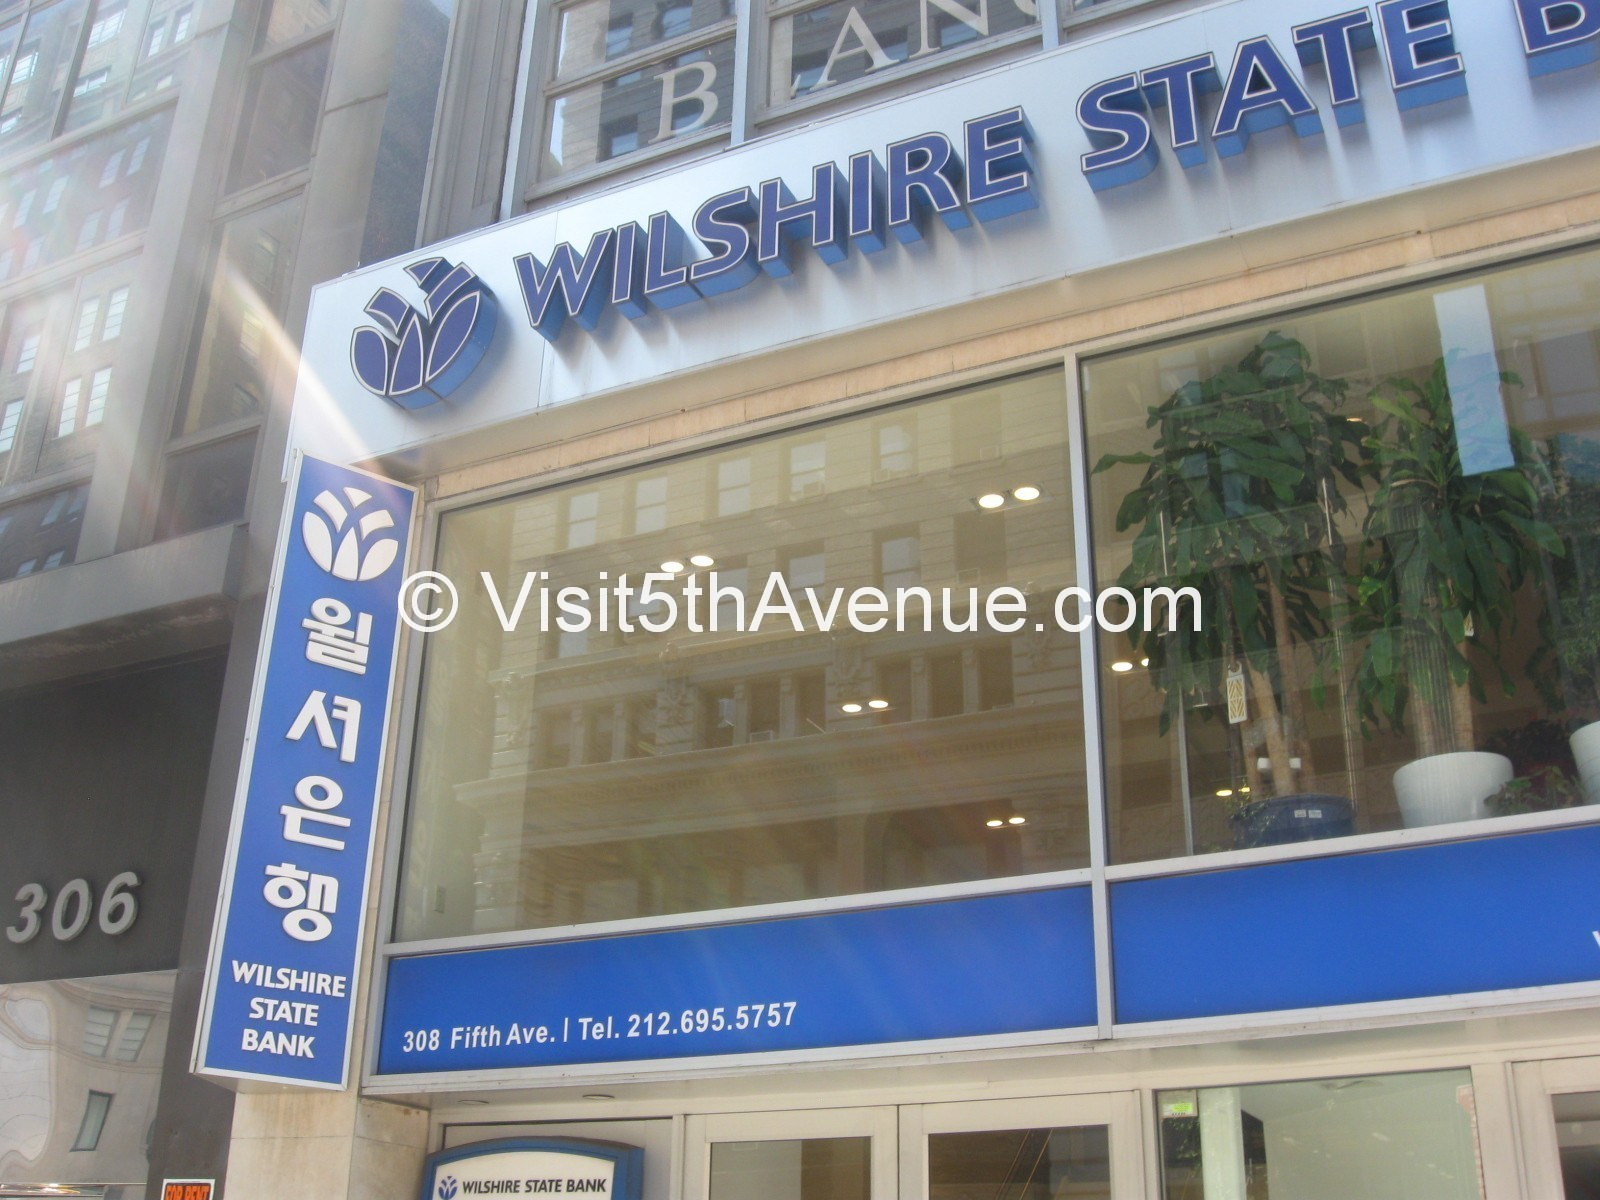 Wilshire State Bank